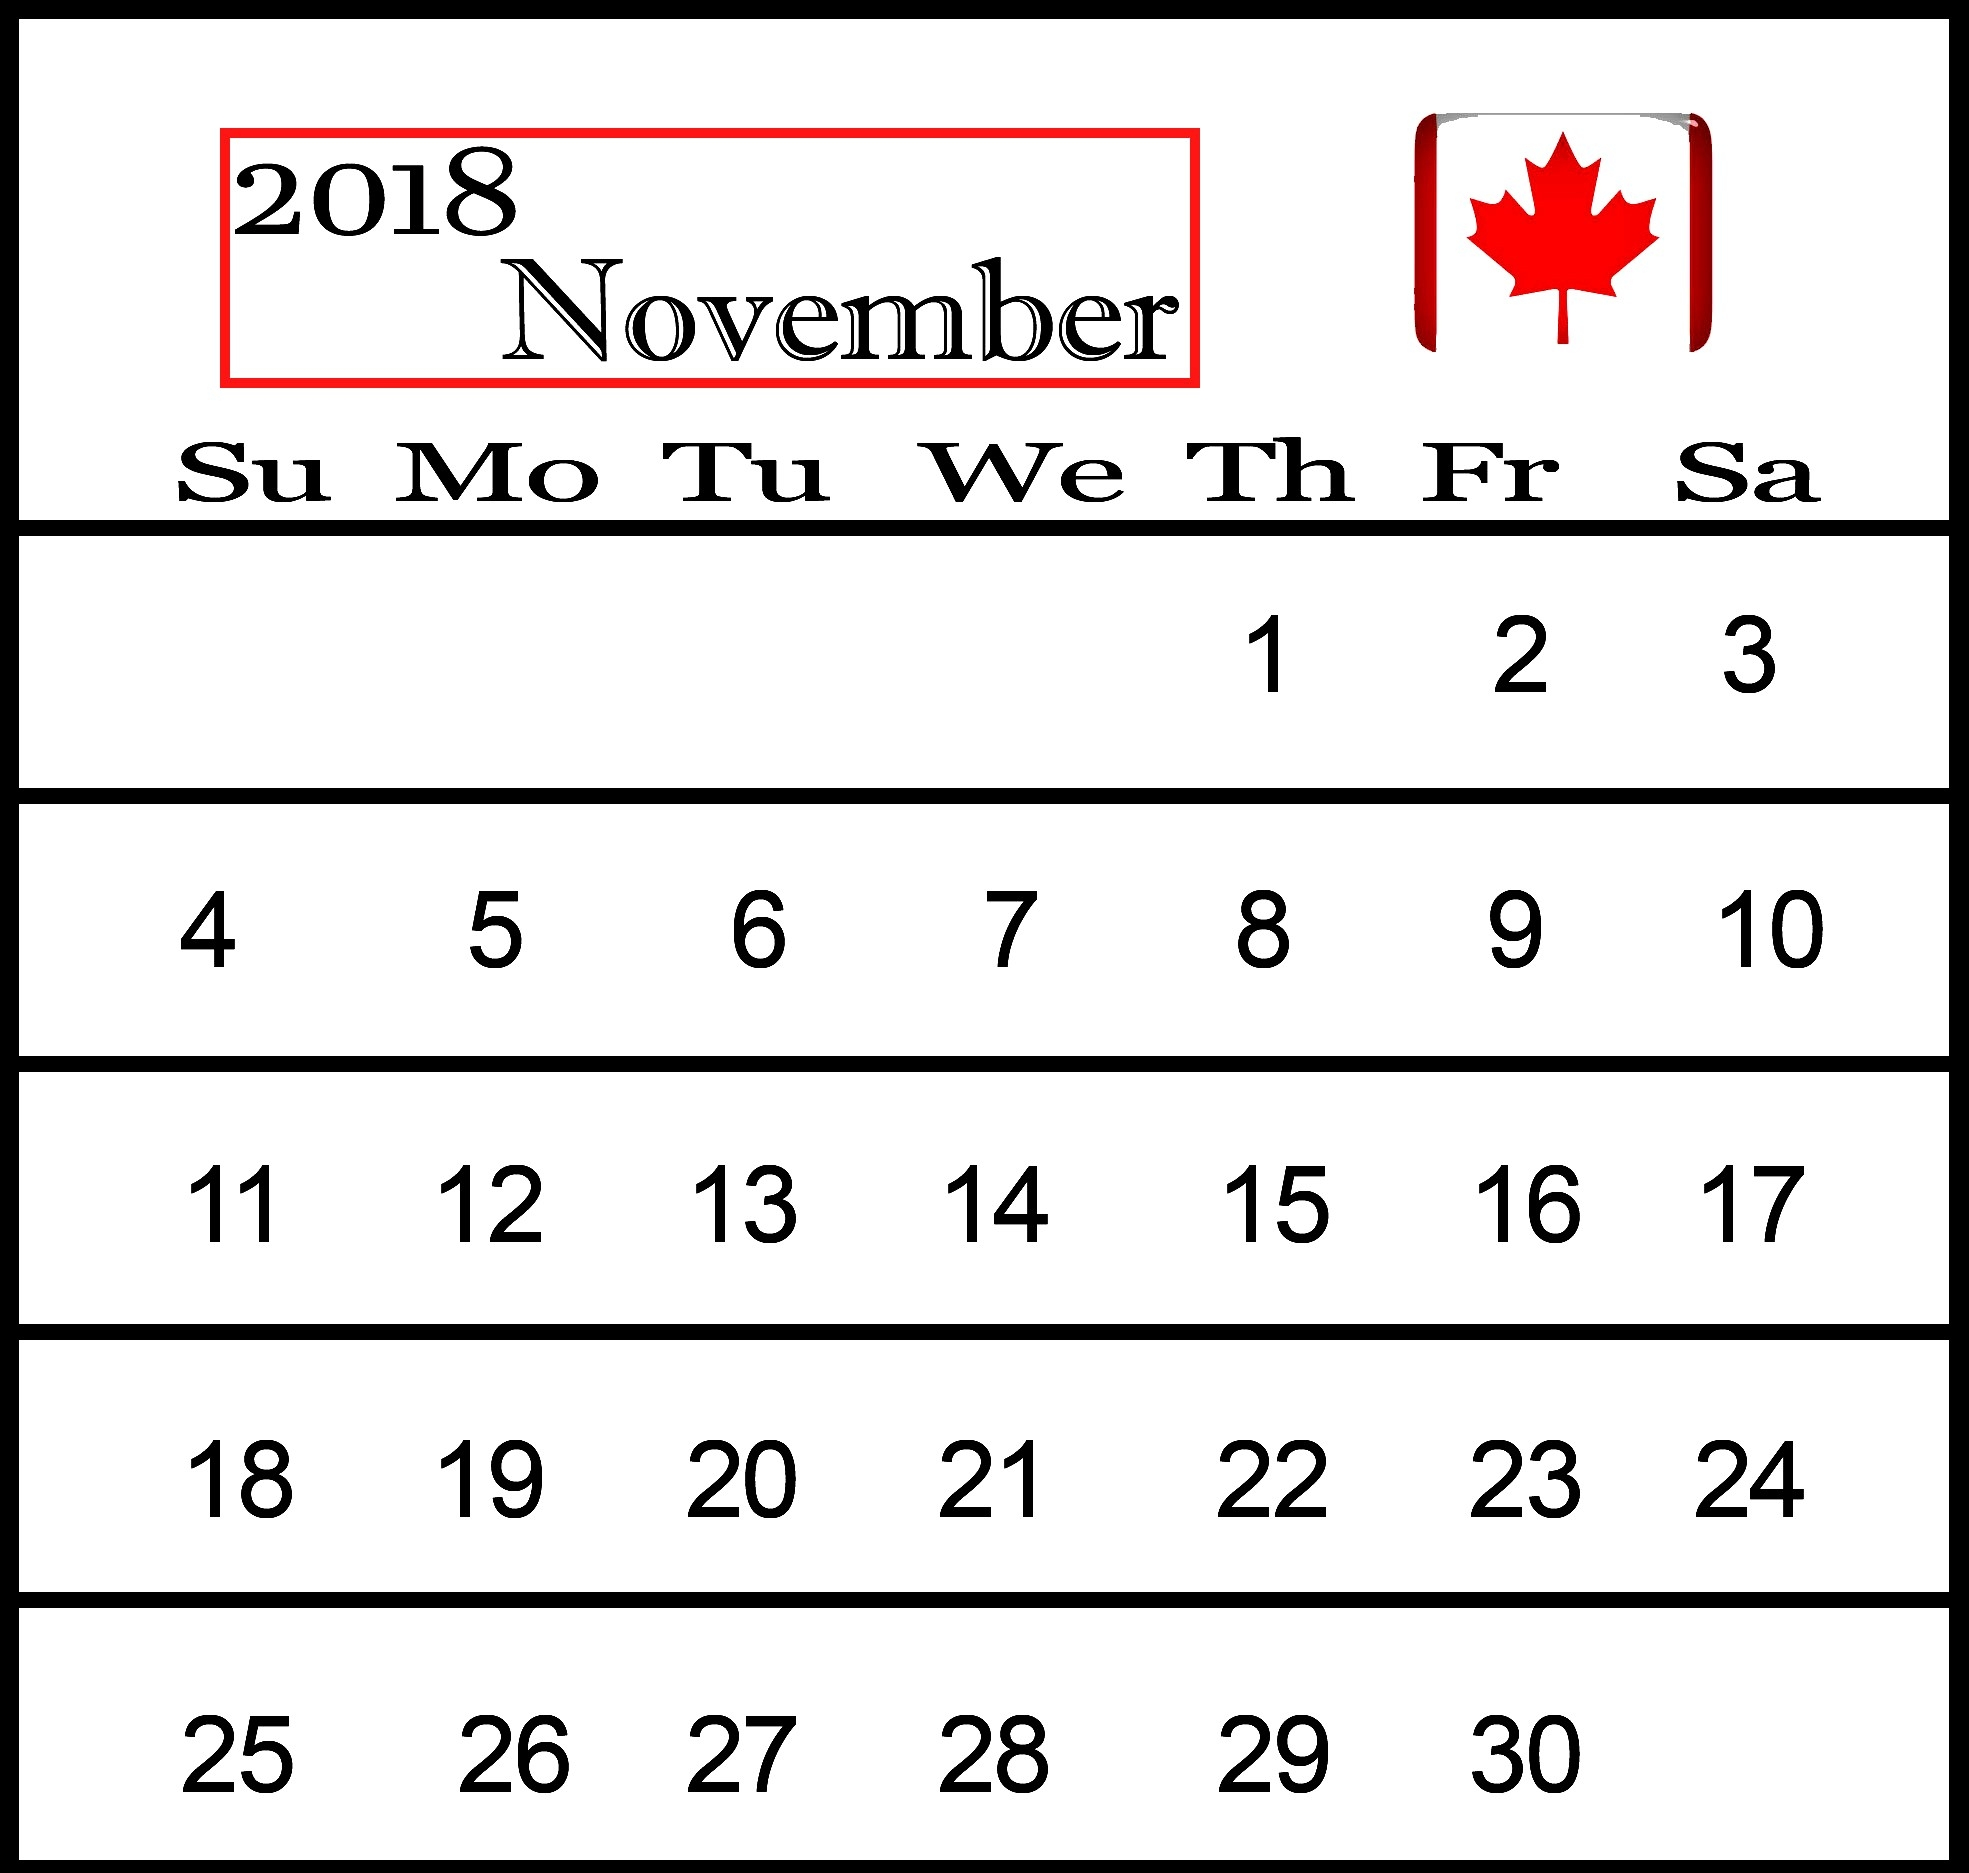 november 2018 calendar printable templates in ms word::November 2018 Calendar Printable